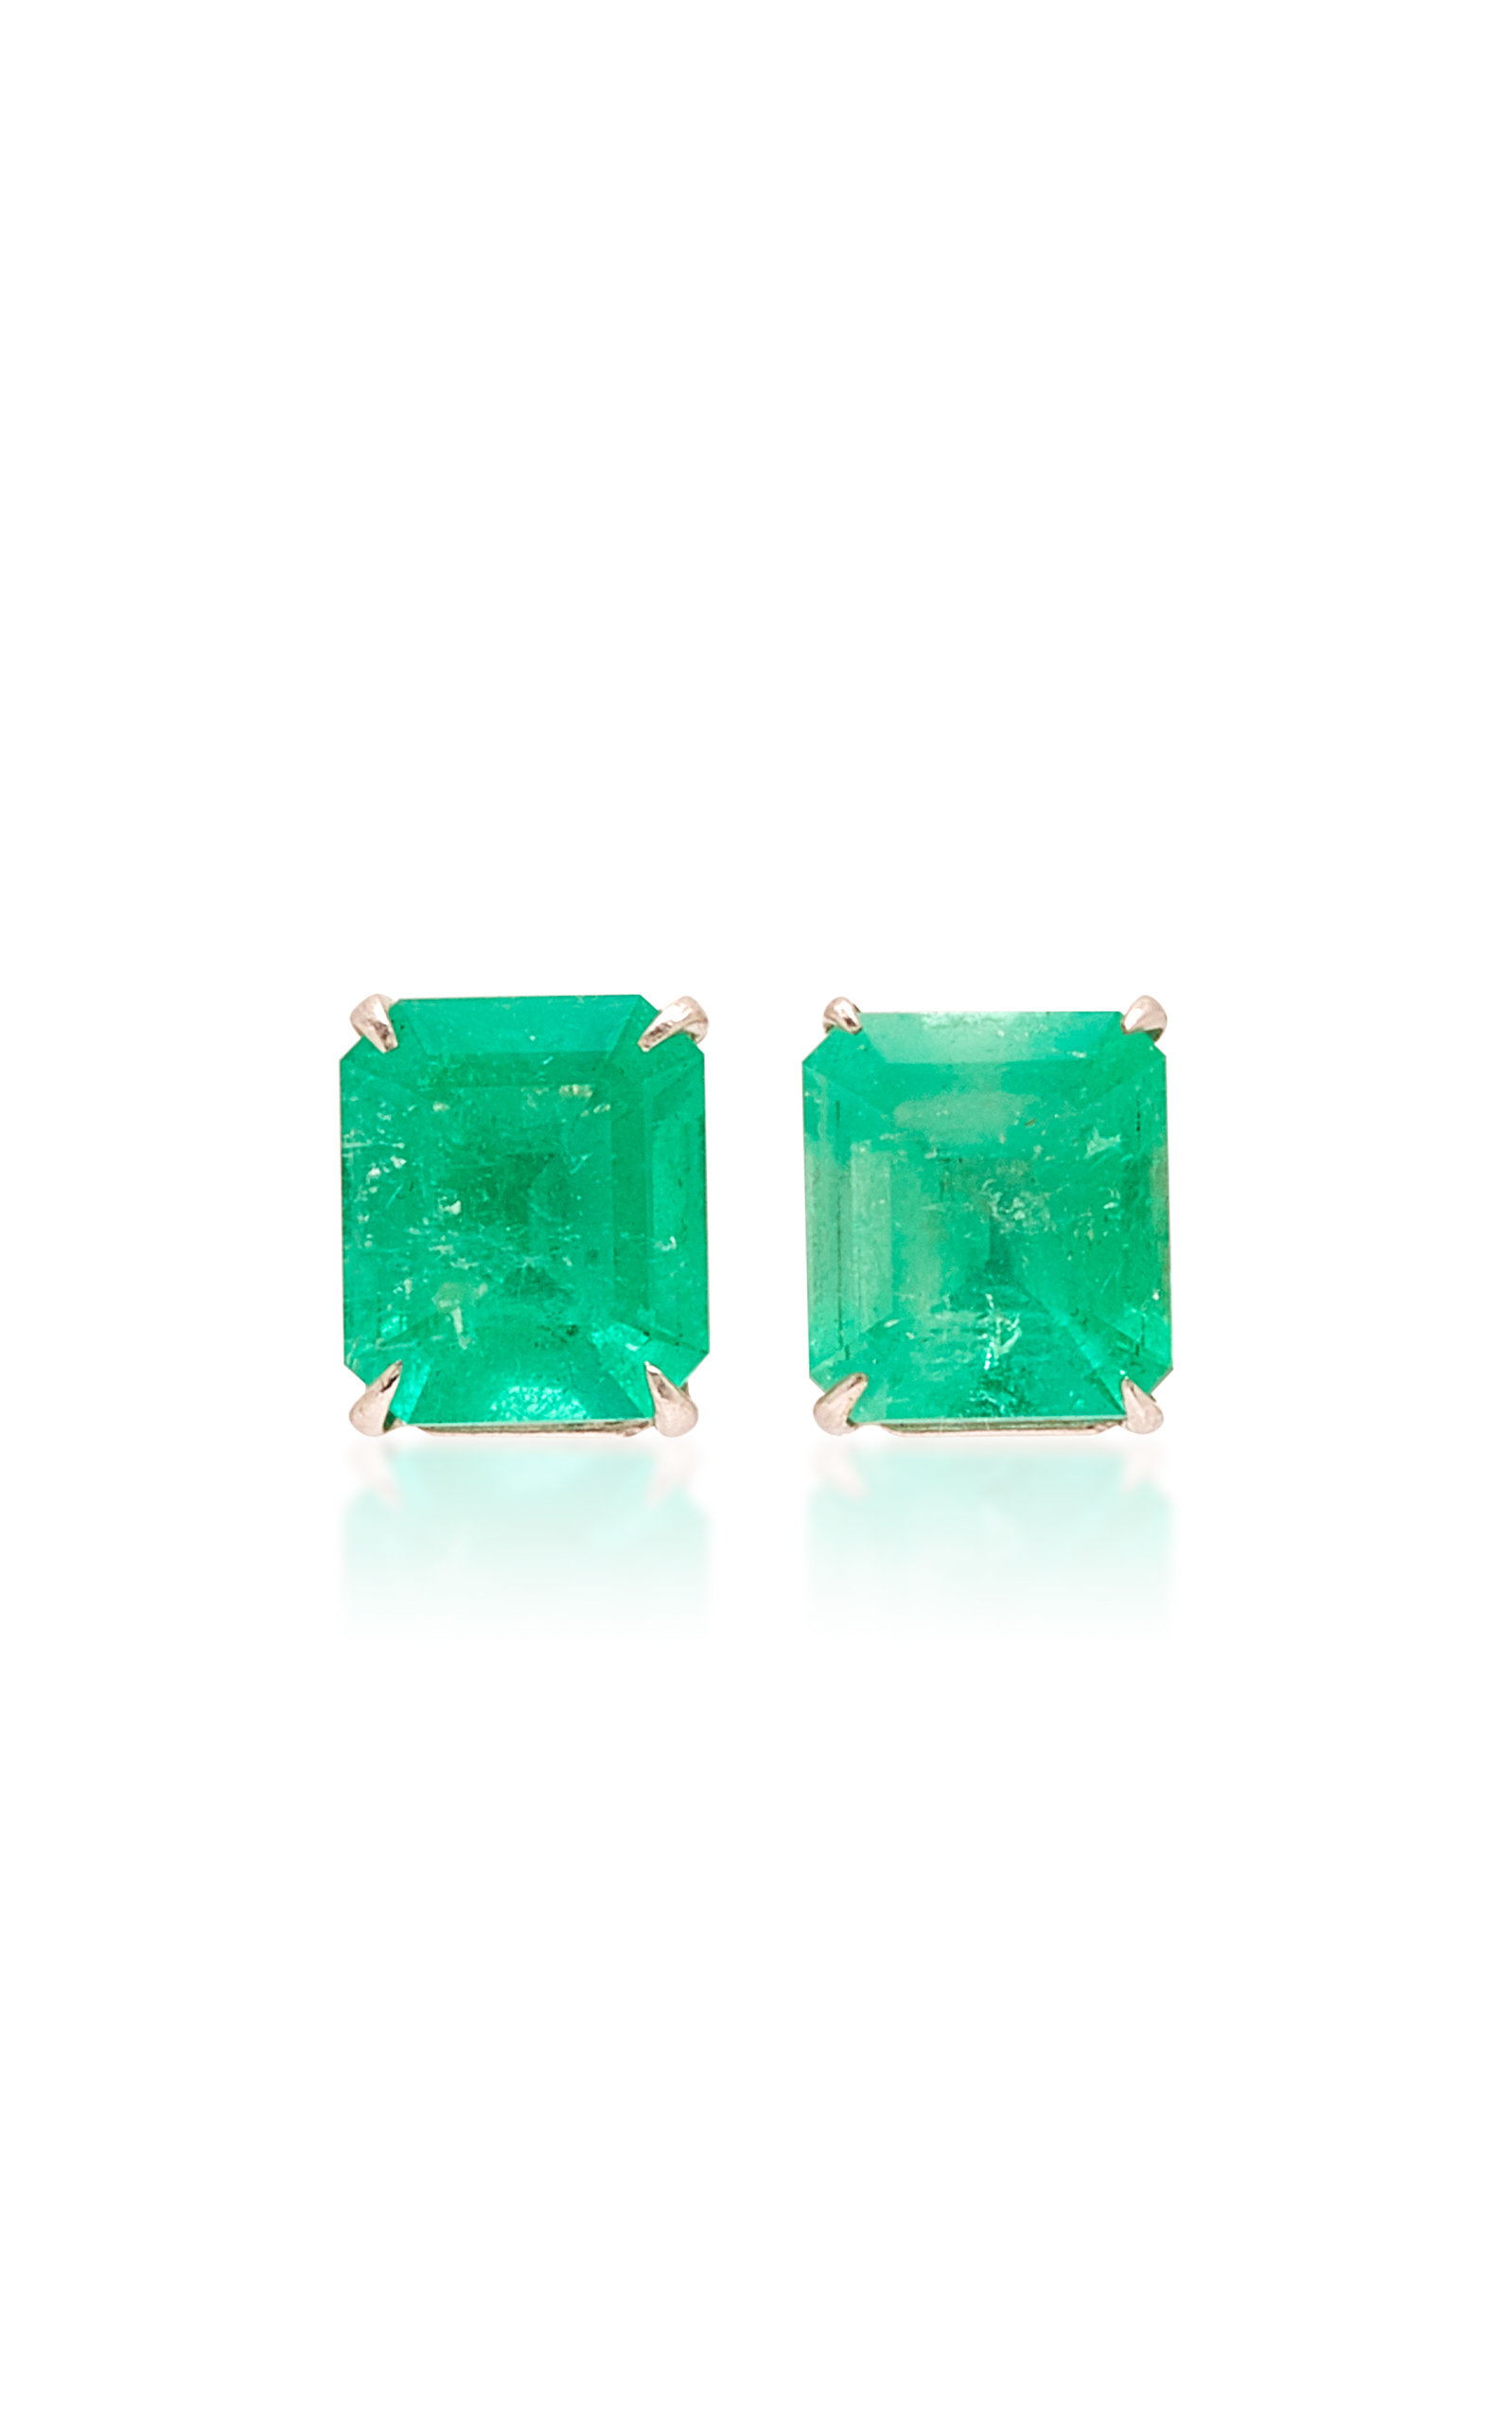 14k White Gold And Emerald Stud Earrings